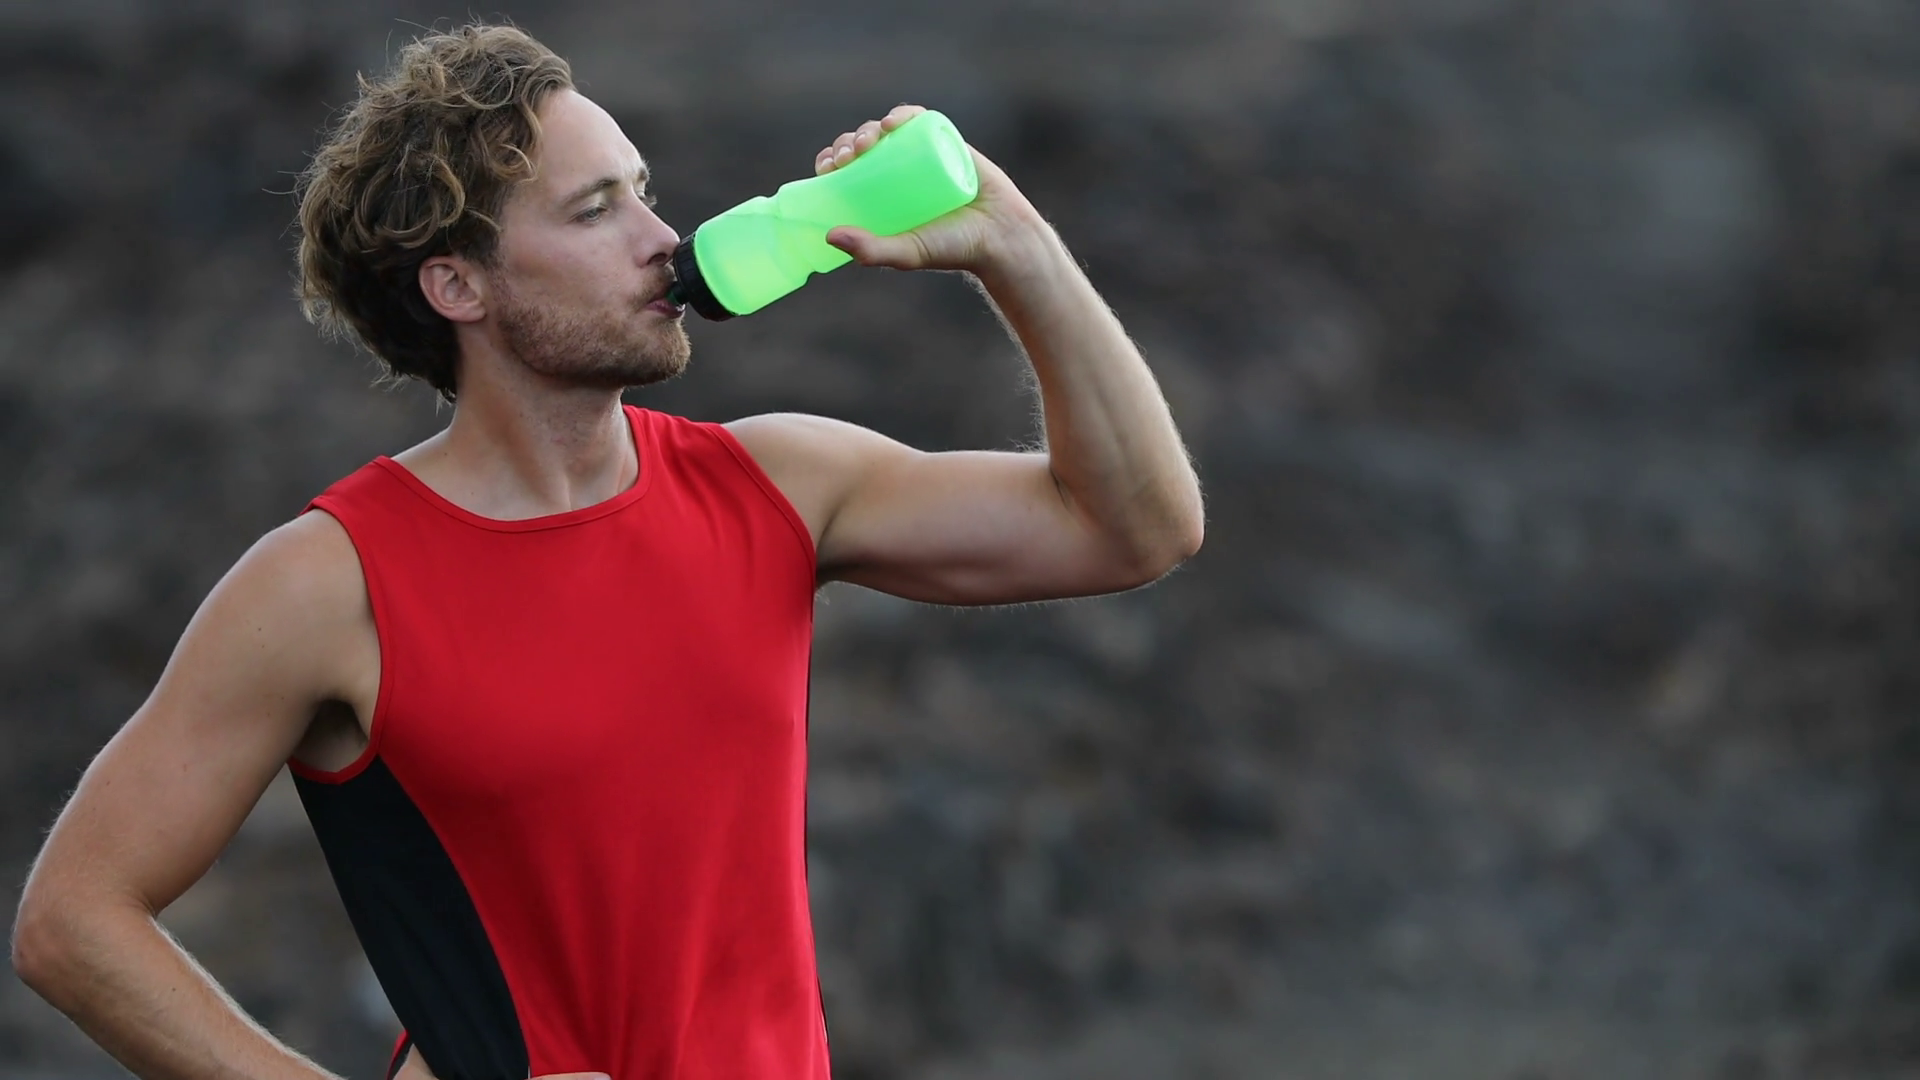 It's important to hydrate yourself occasionally throughout your exercise routine to prevent muscle cramps.